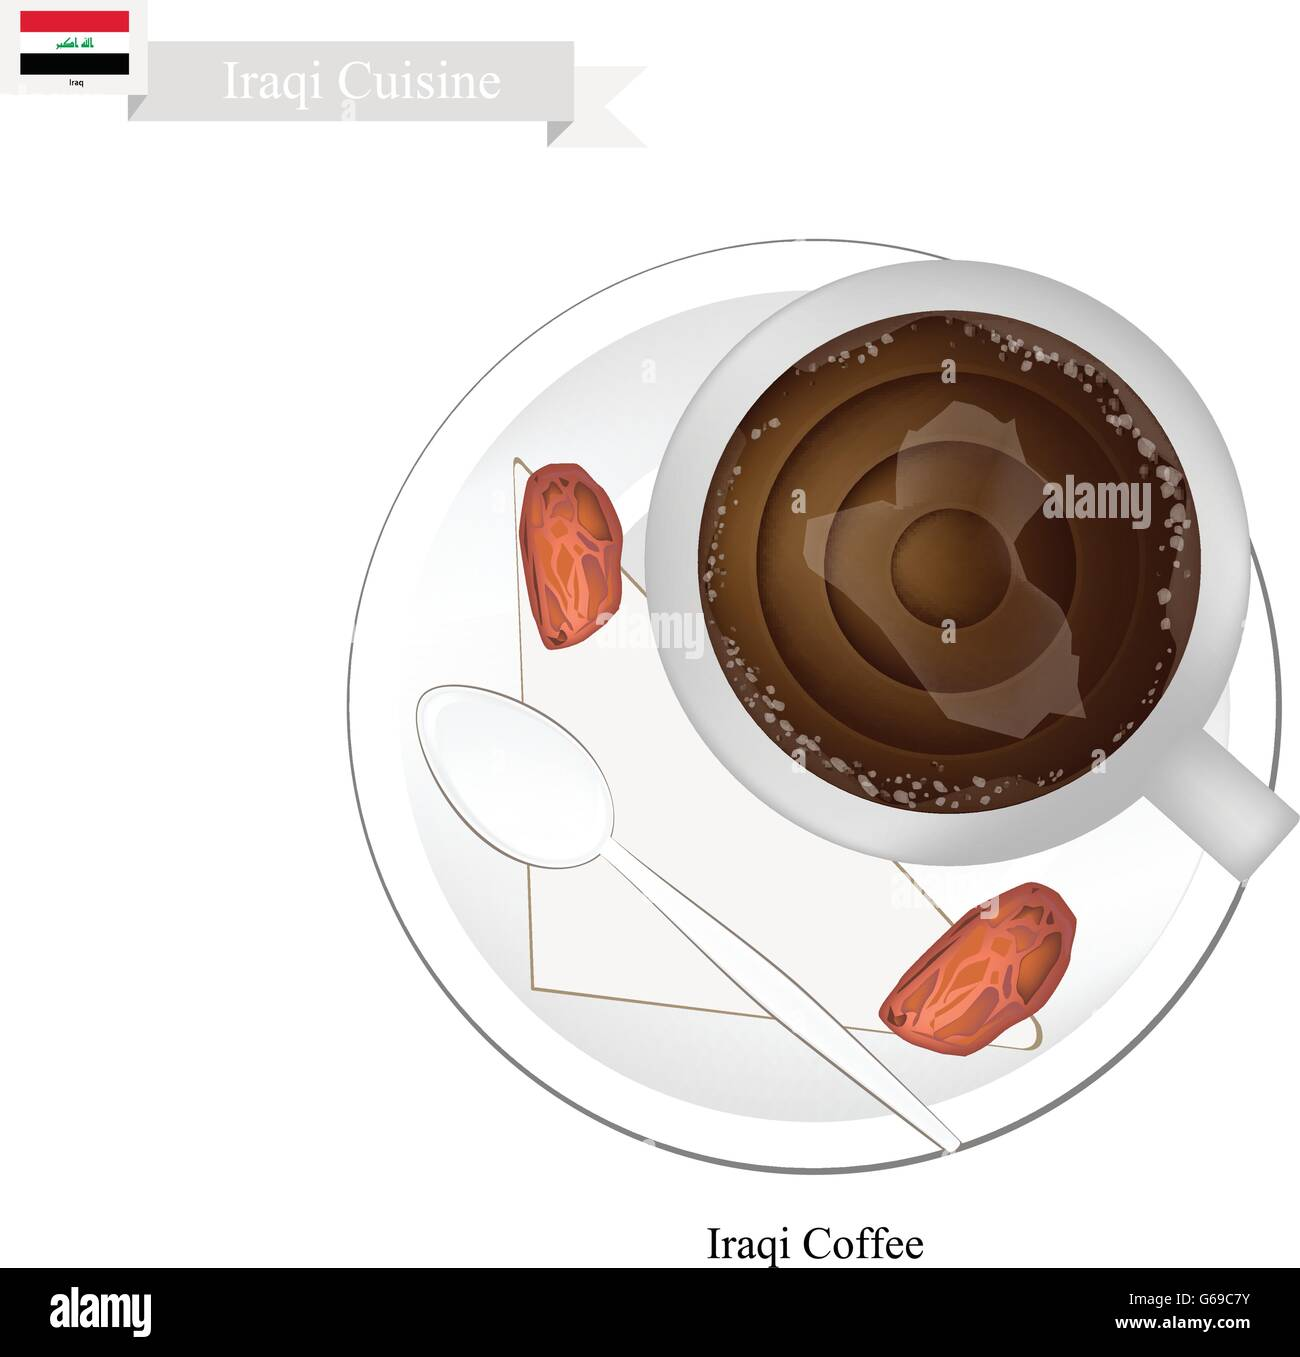 Iraqi Cuisine, Iraqi Coffee or Coffee Brewed from Dark Roast Coffee Beans Spiced with Cardamom. One of The Popular - Stock Vector